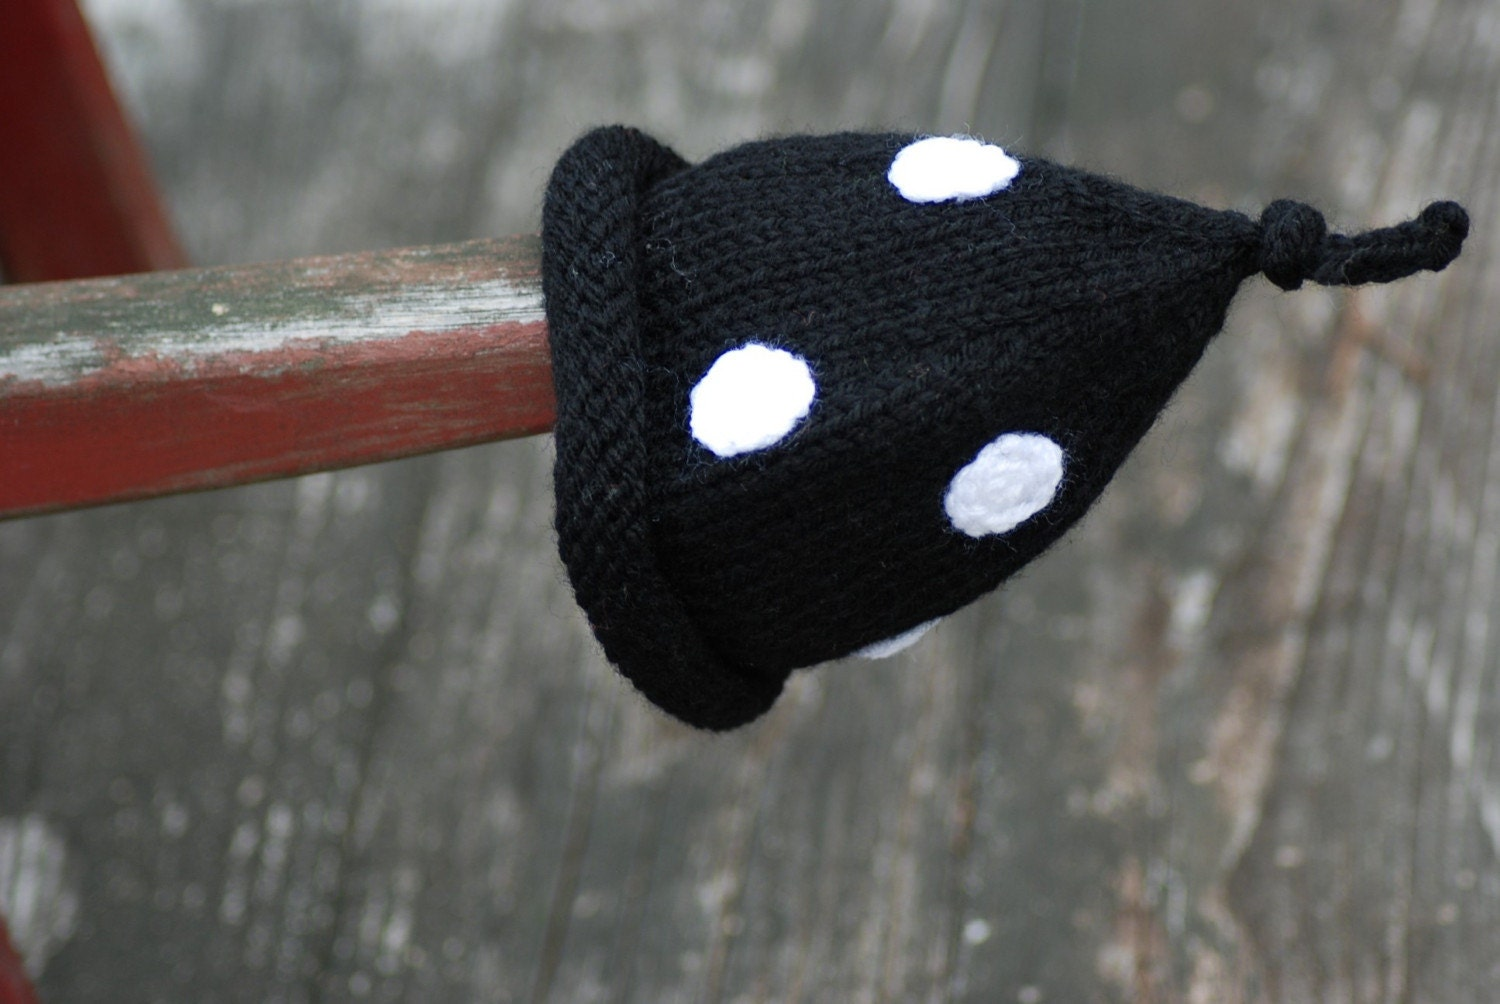 Spring Newborn CUSTOM Infant Baby Black and White Polka Dot Bonnet Boutique Hat